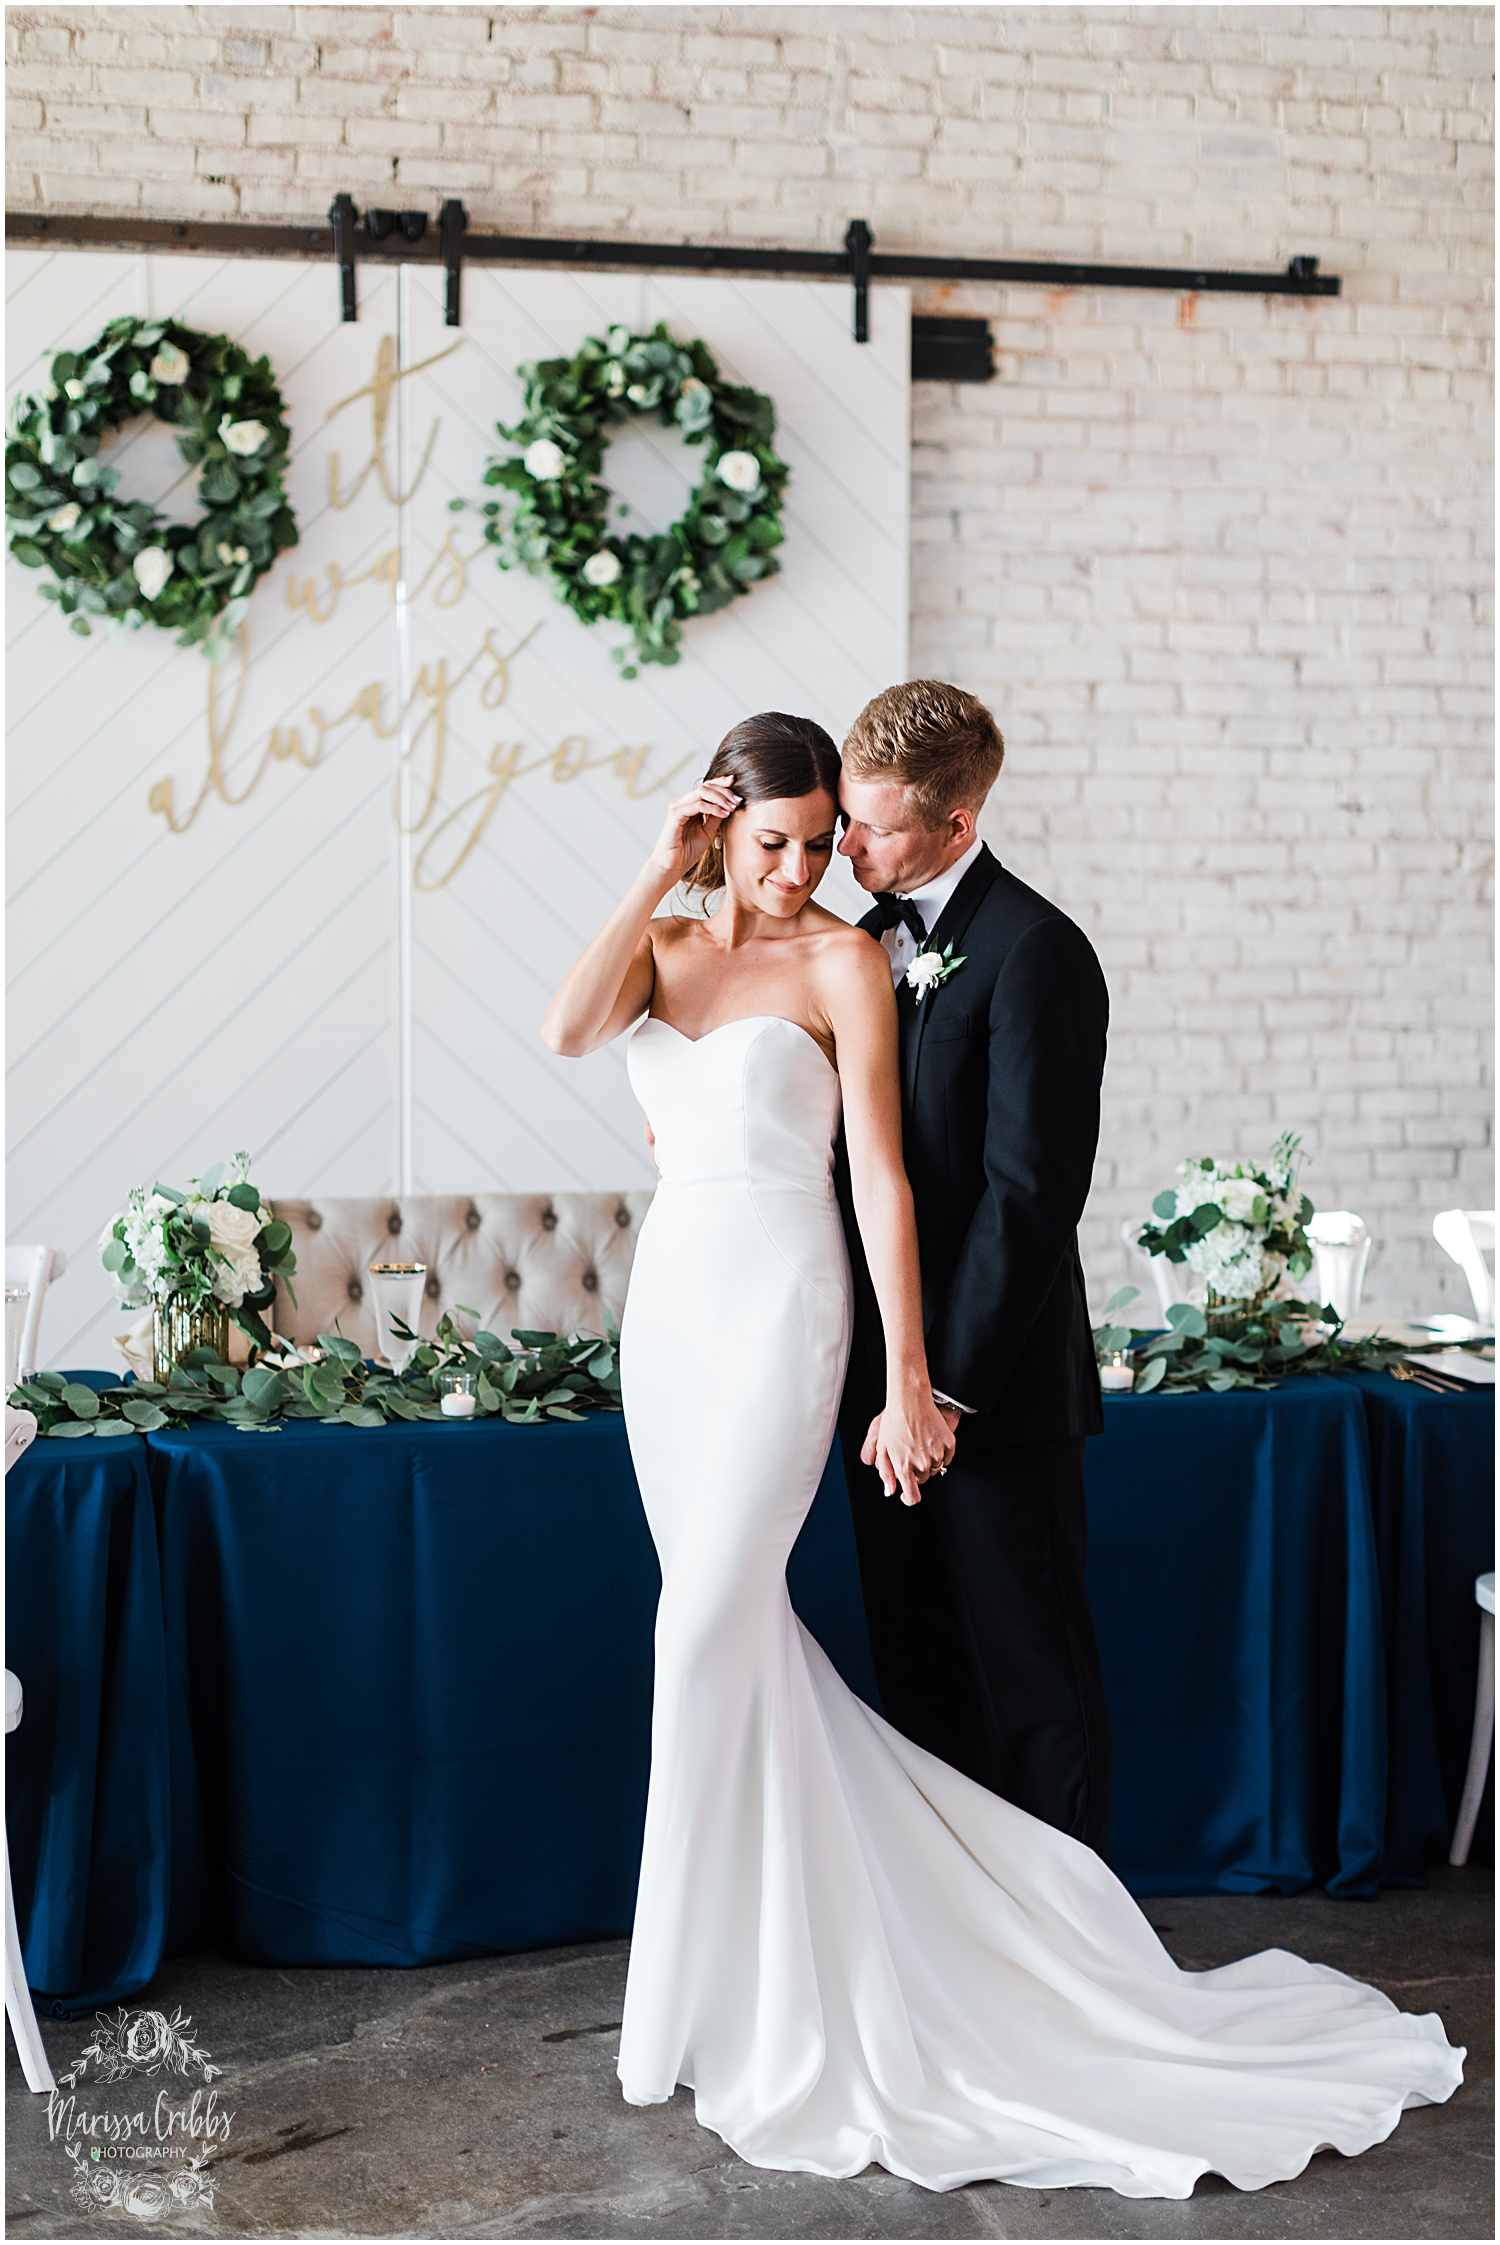 JOANNE & GEORGE MARRIED BLOG | MARISSA CRIBBS PHOTOGRAPHY | THE ABBOTT | KANSAS CITY WEDDING PHOTOS_9124.jpg